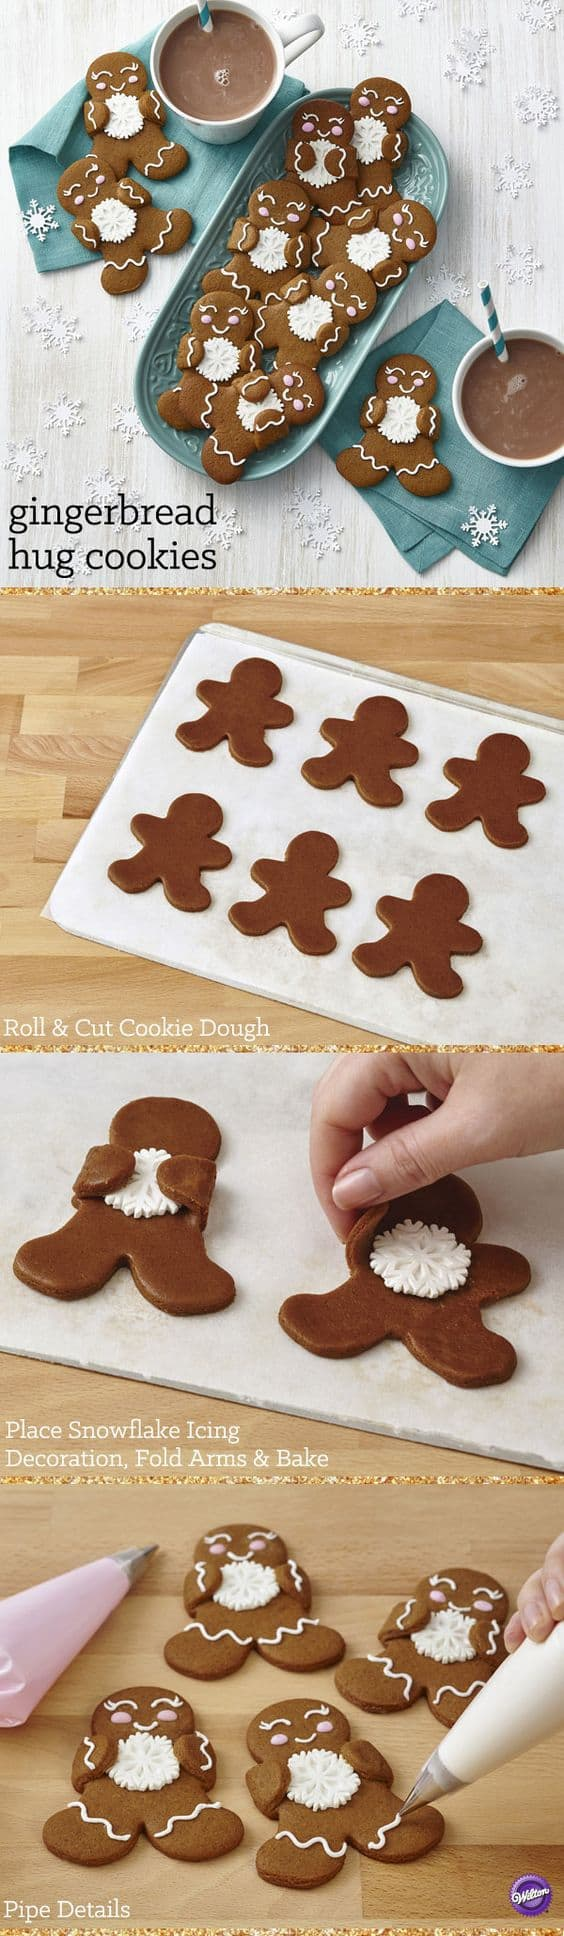 Gingerbread Hug Cookies